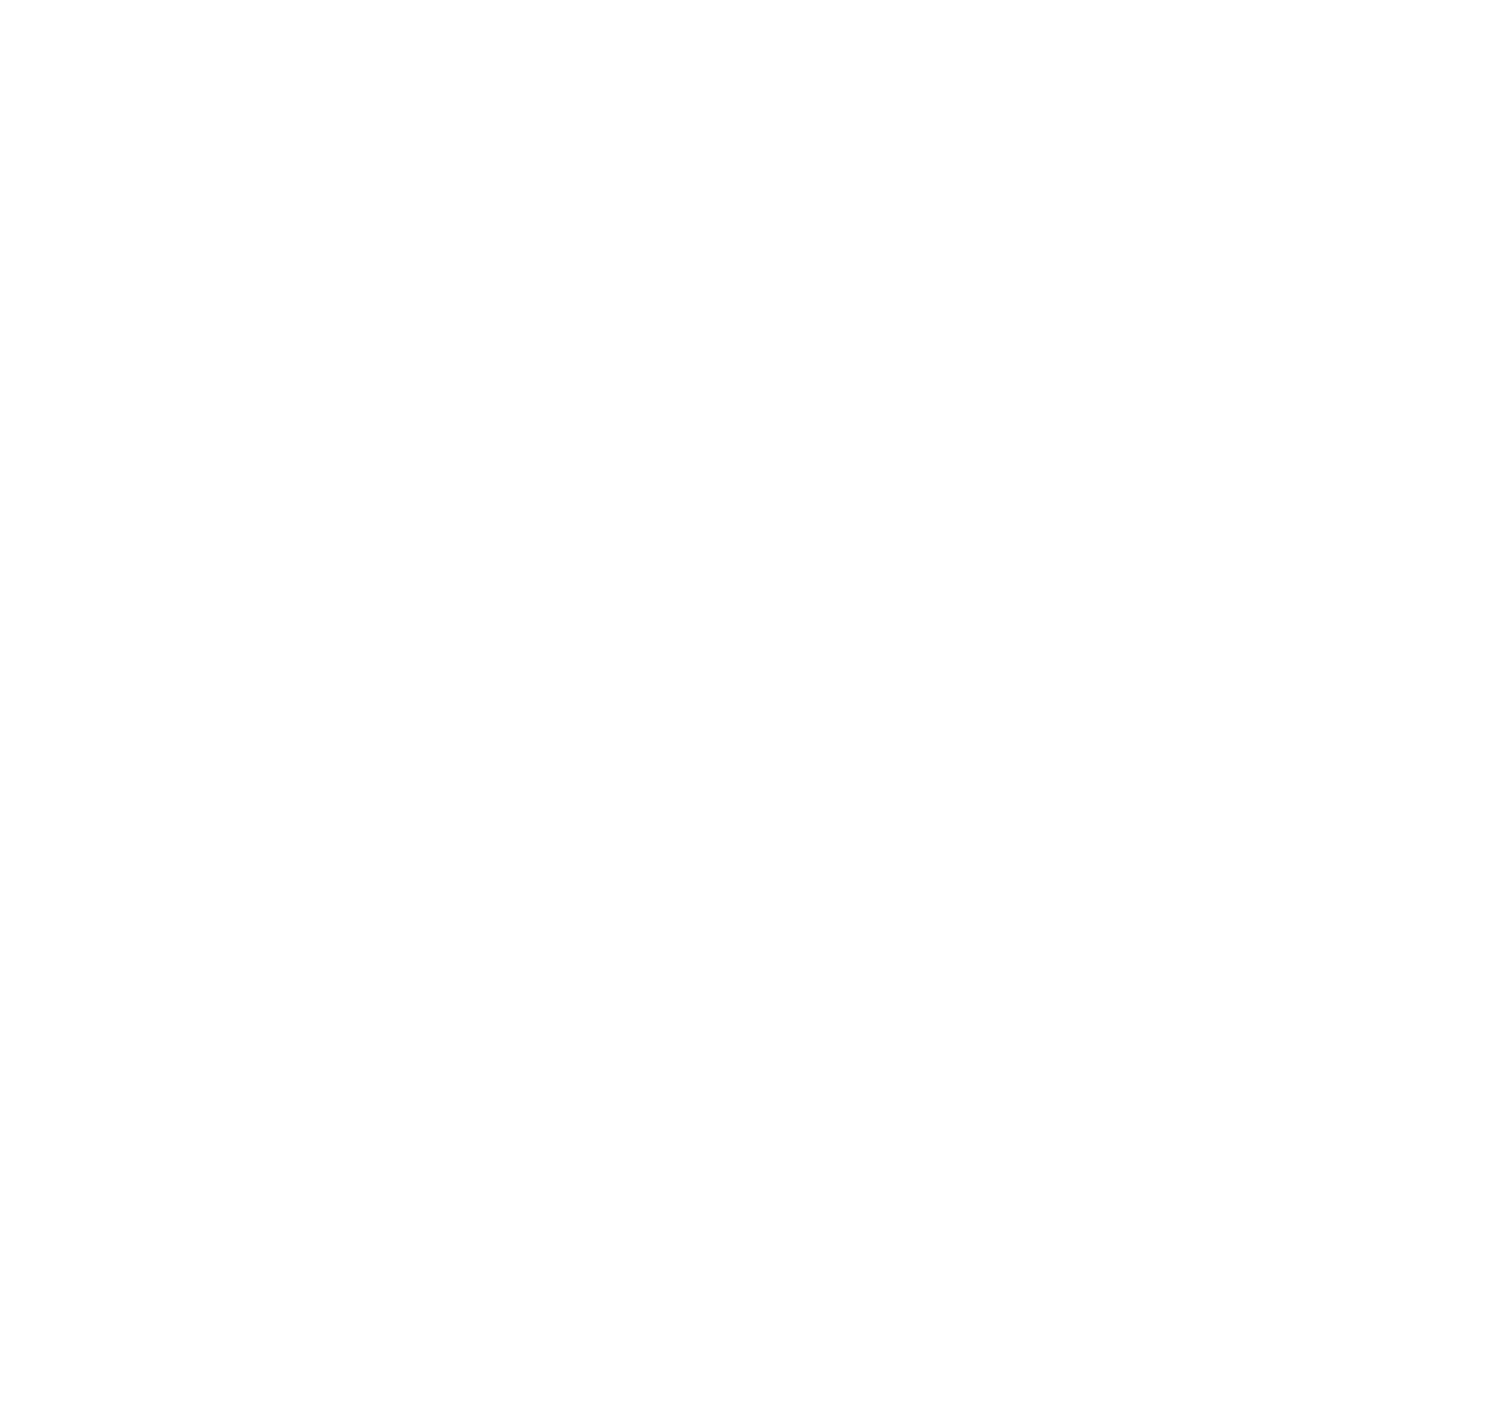 Synergistic Movement